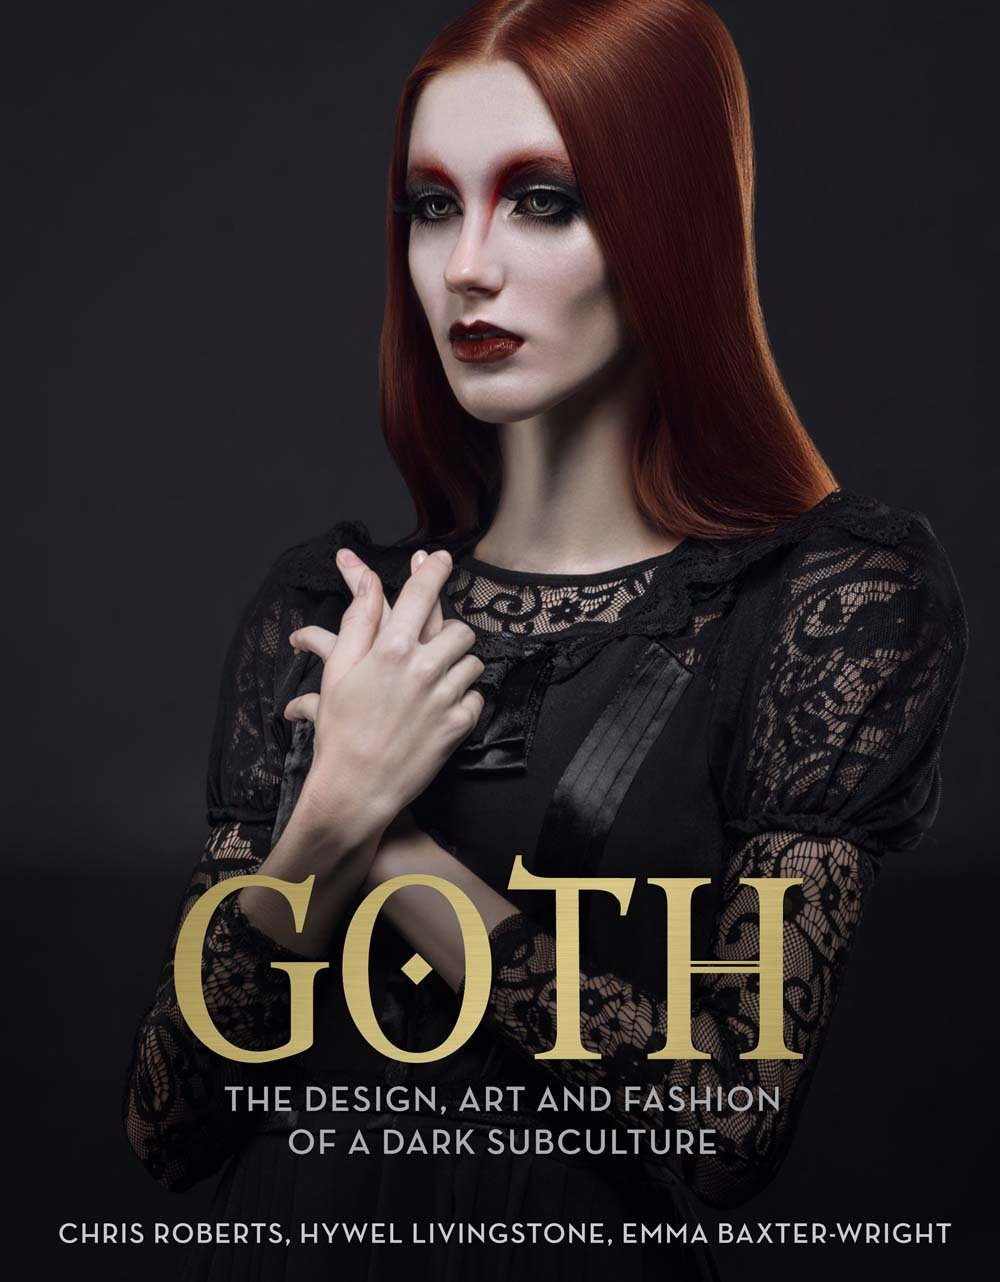 Goth: The Design, Art and Fashion of a Dark Subculture